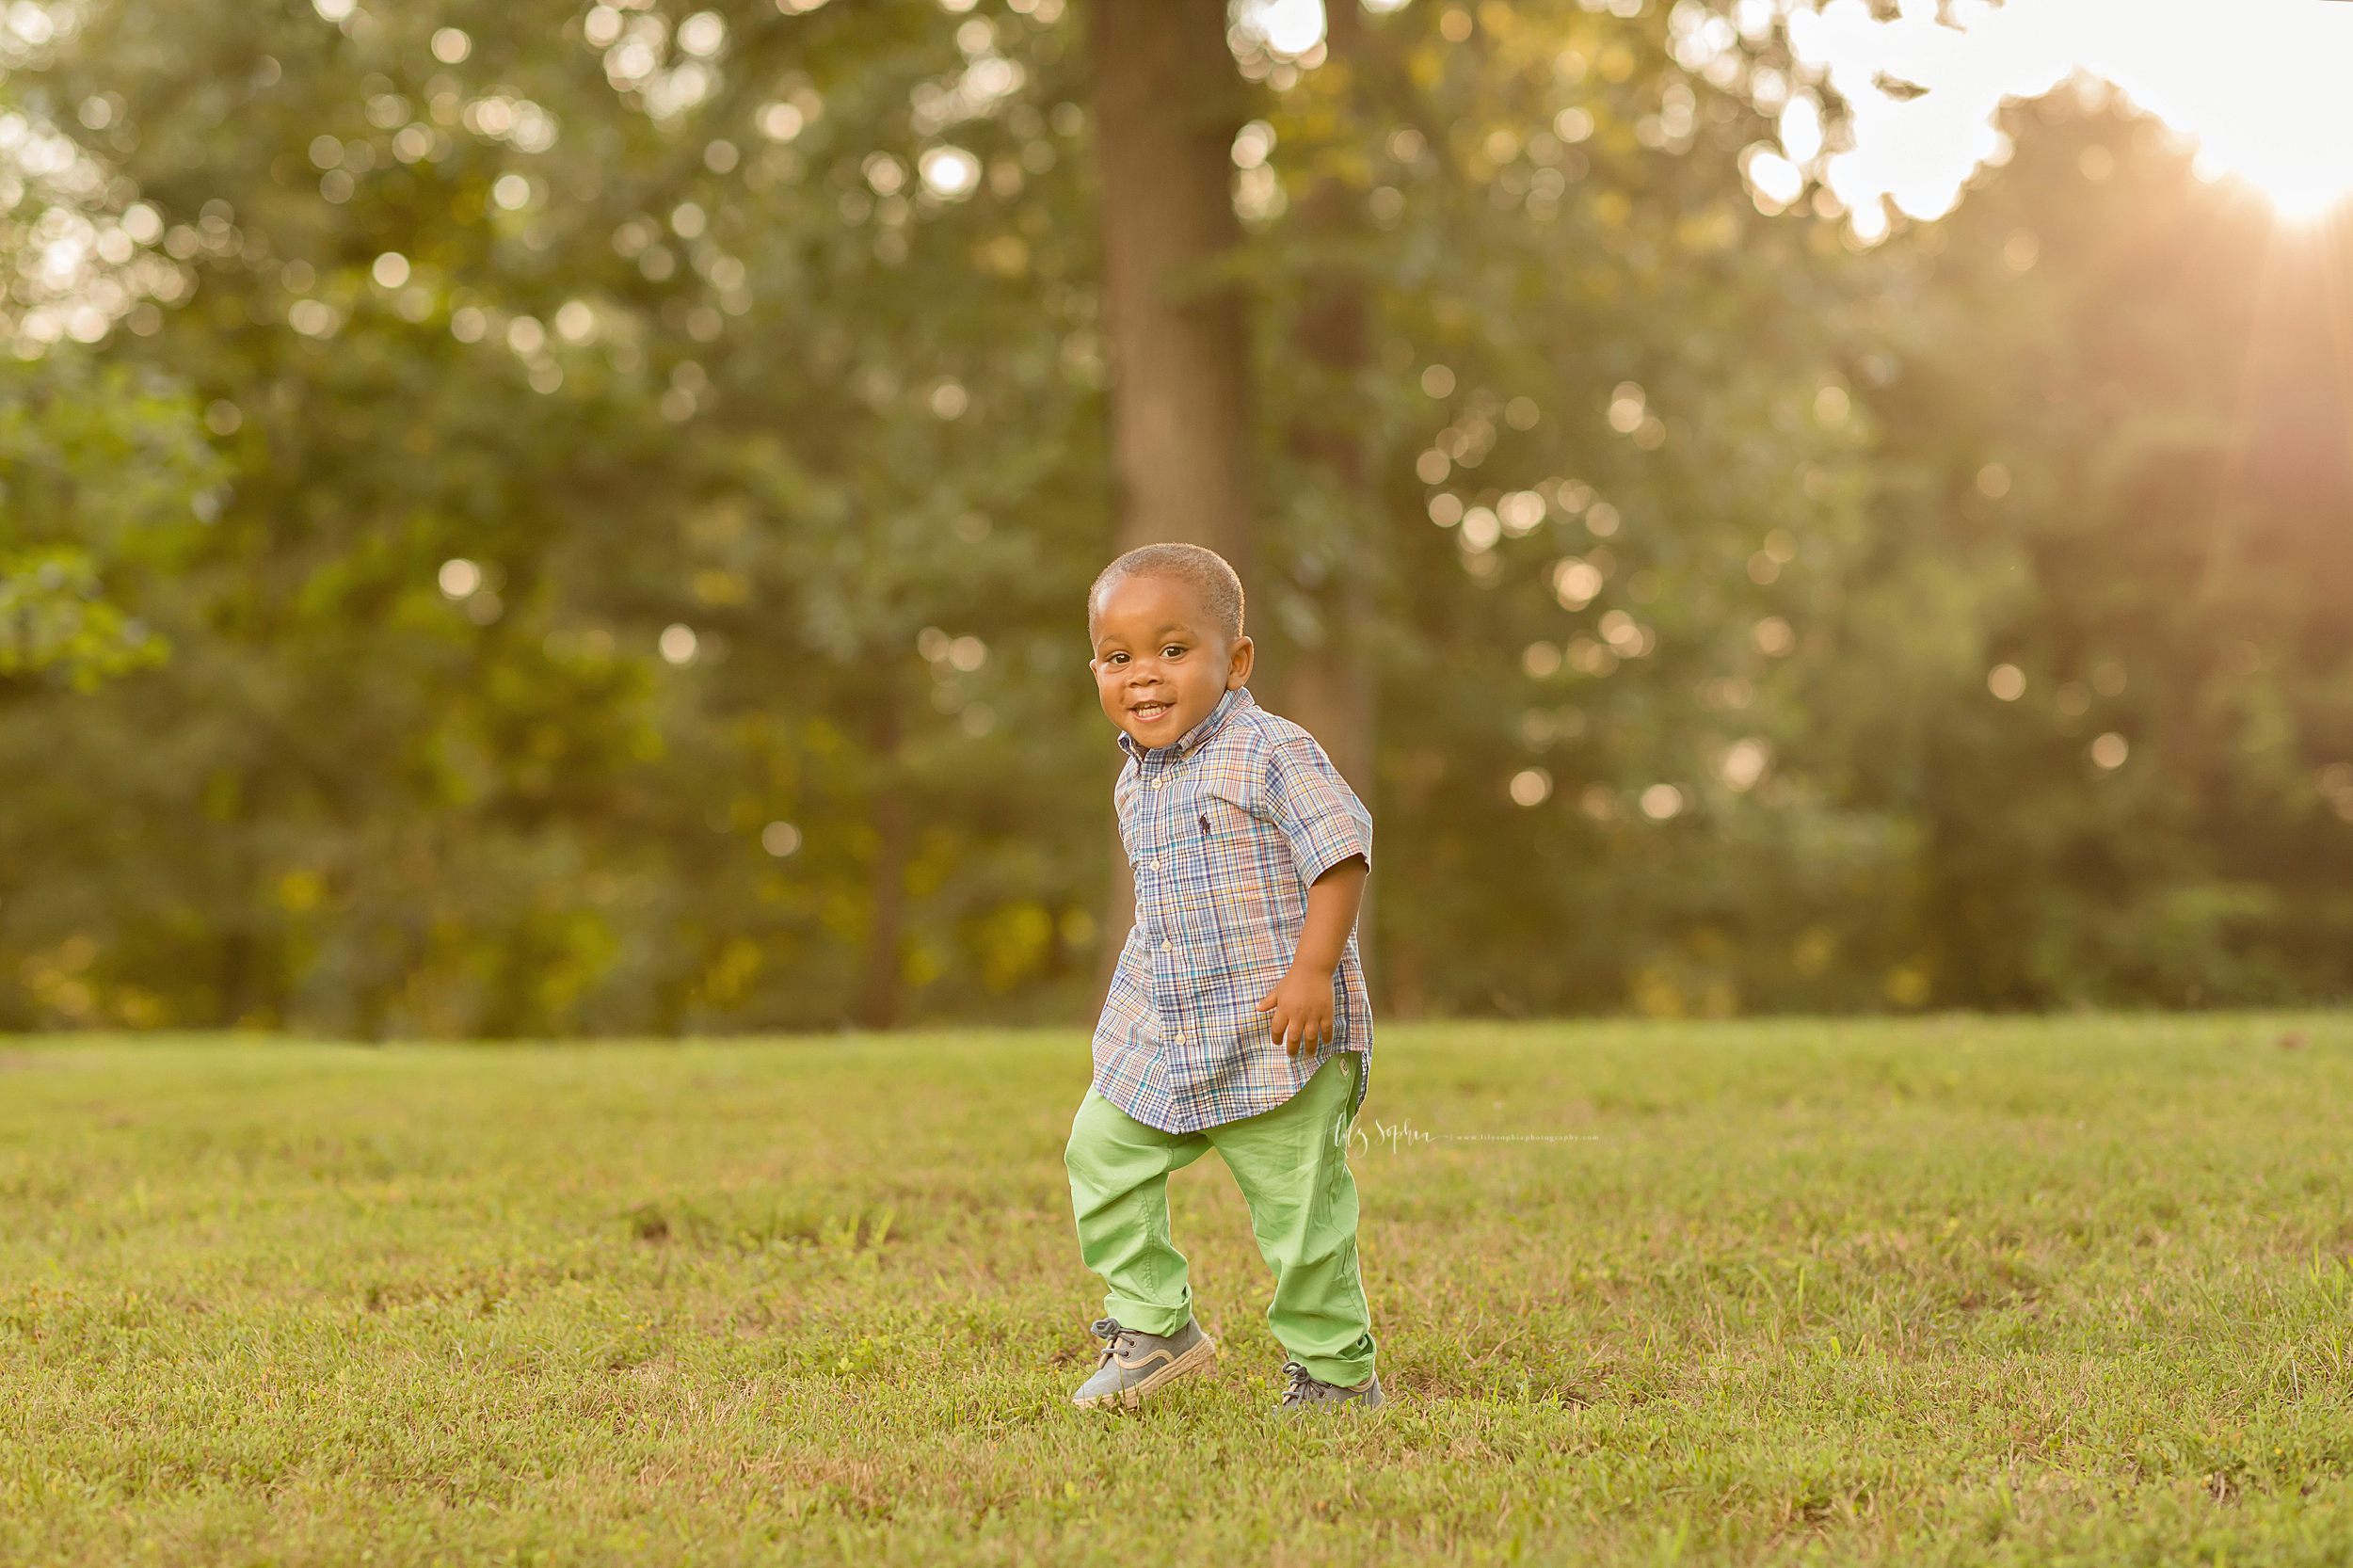 atlanta-hapeville-brookhaven-alpharetta-virginia-highlands-smyrna-decatur-lily-sophia-photography-outdoor-family-mother-toddler-son-second-birthday-park-sunset-pictures_0702.jpg